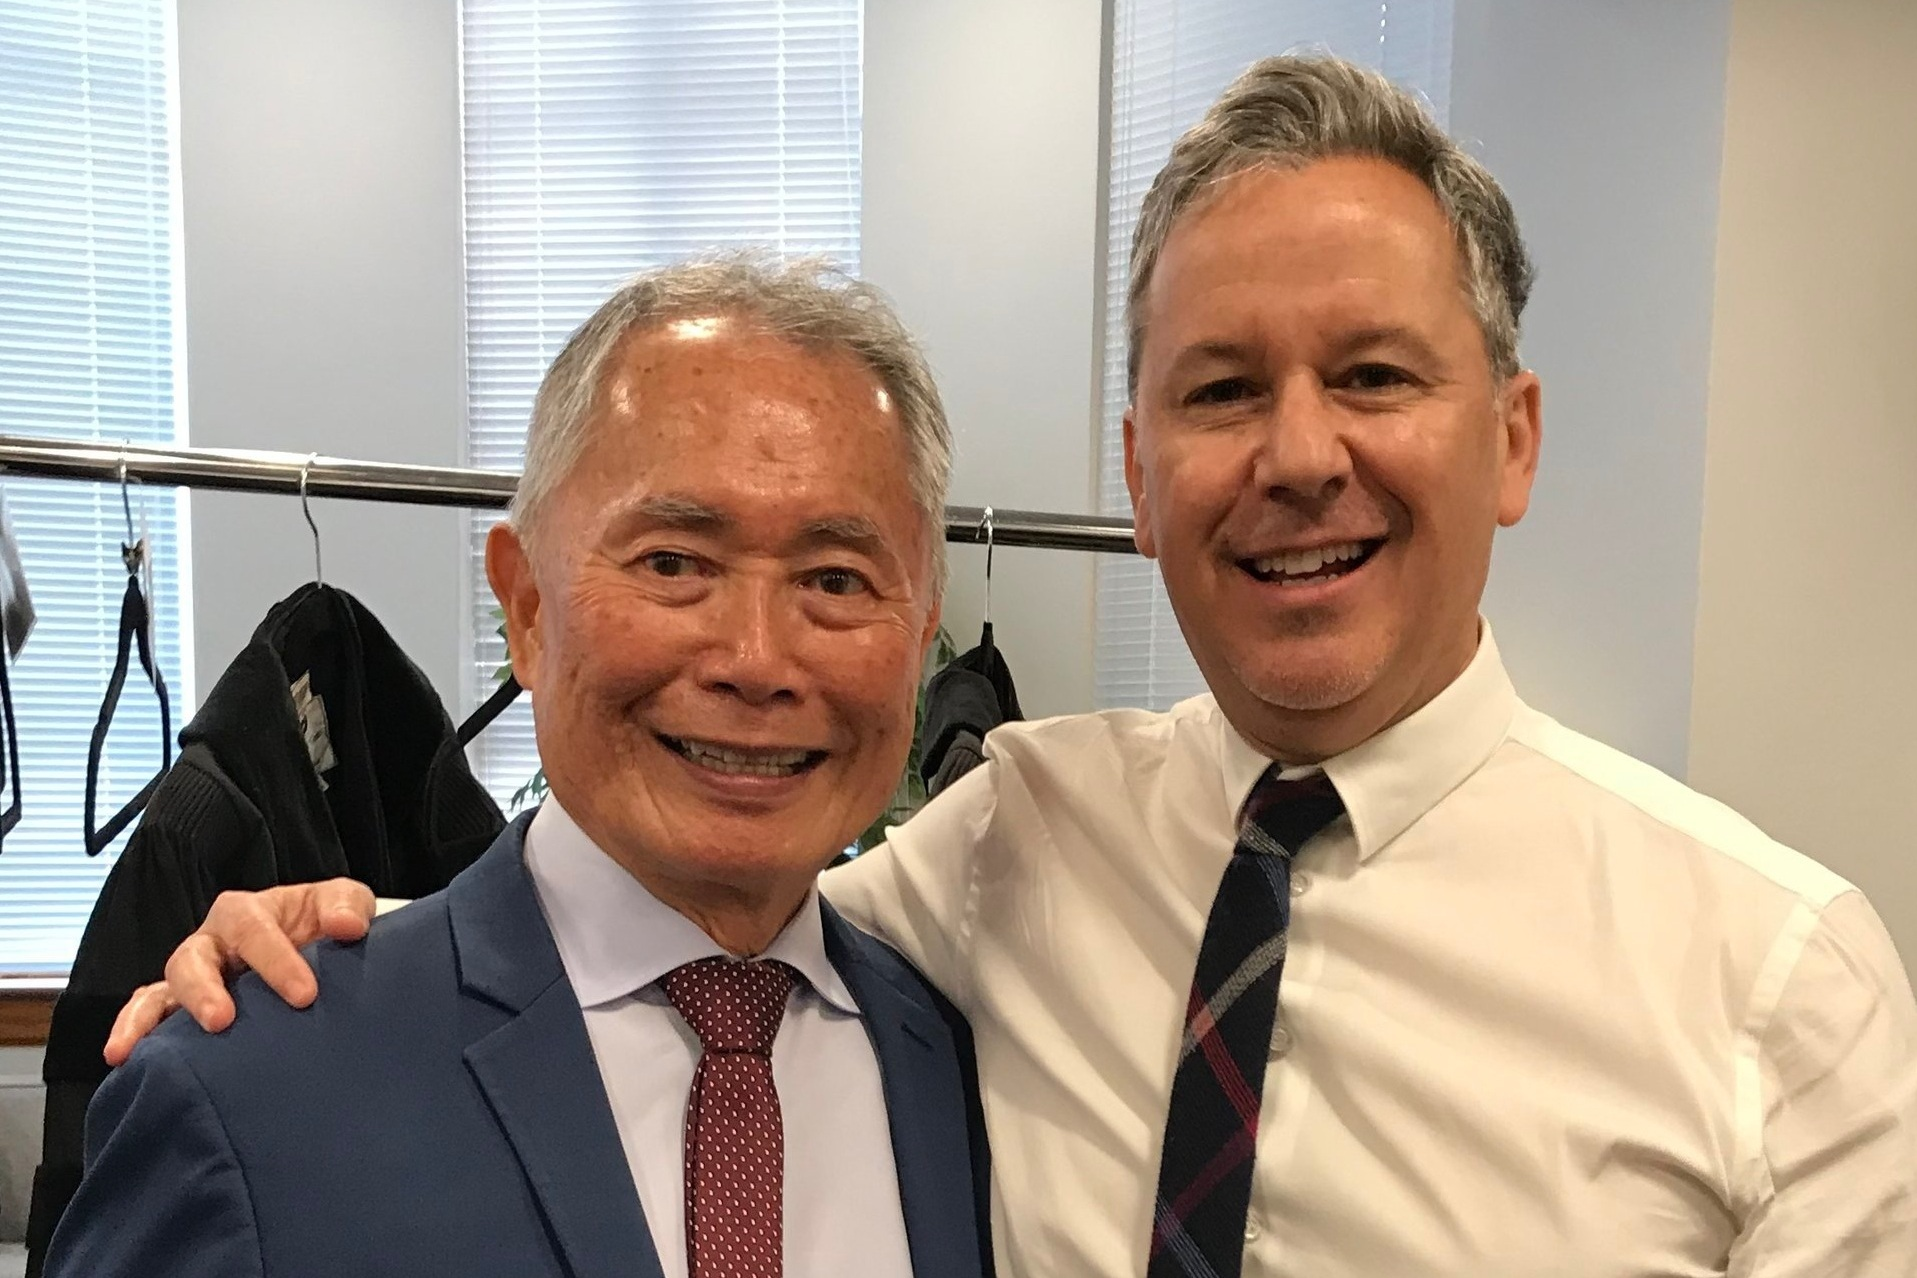 With actor and activist George Takei, recipient of the 2019 UCLA Film School Distinguished Alumni Award in Theater.